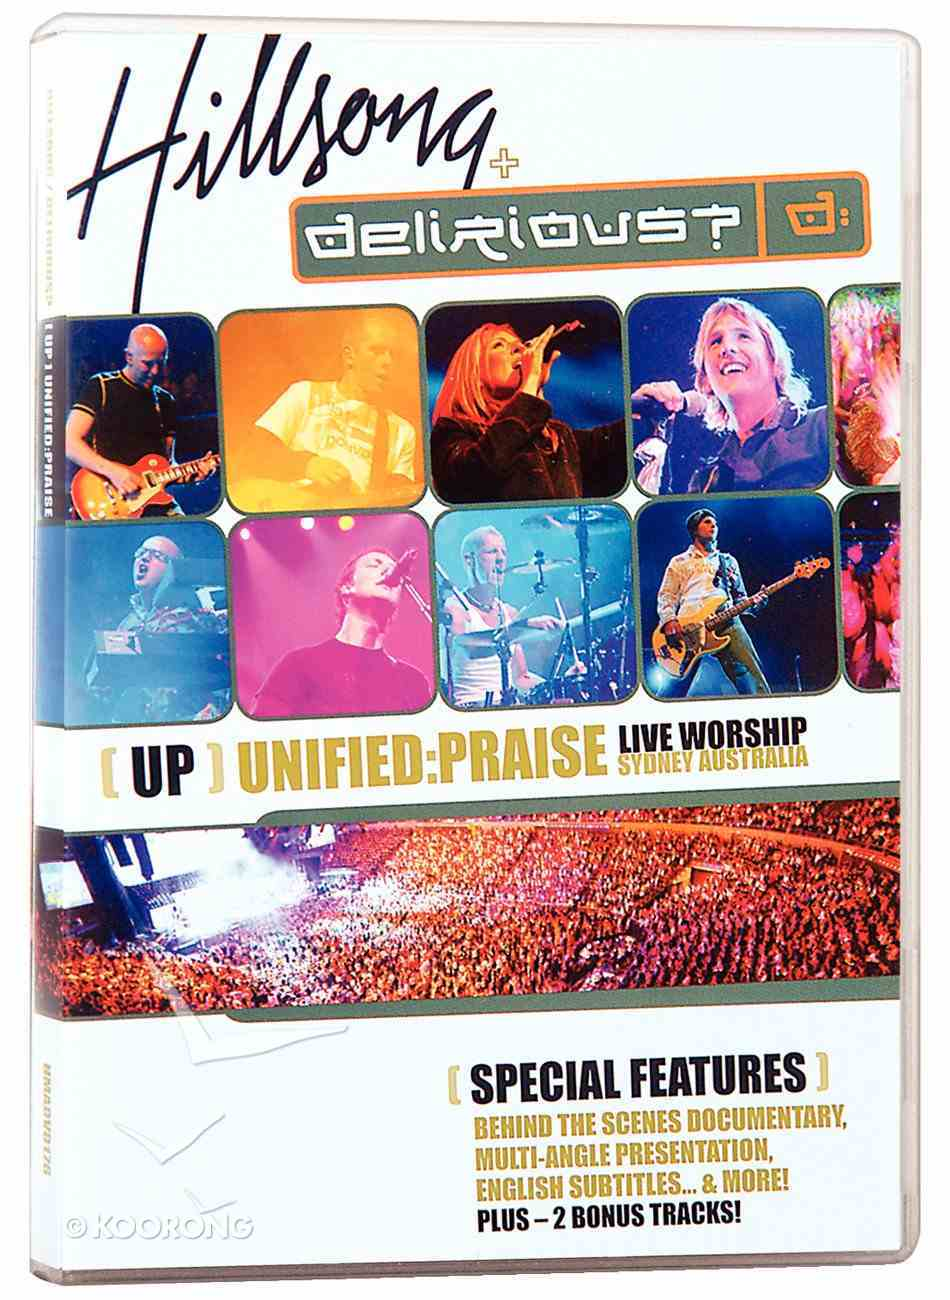 2004 Unified: Praise DVD